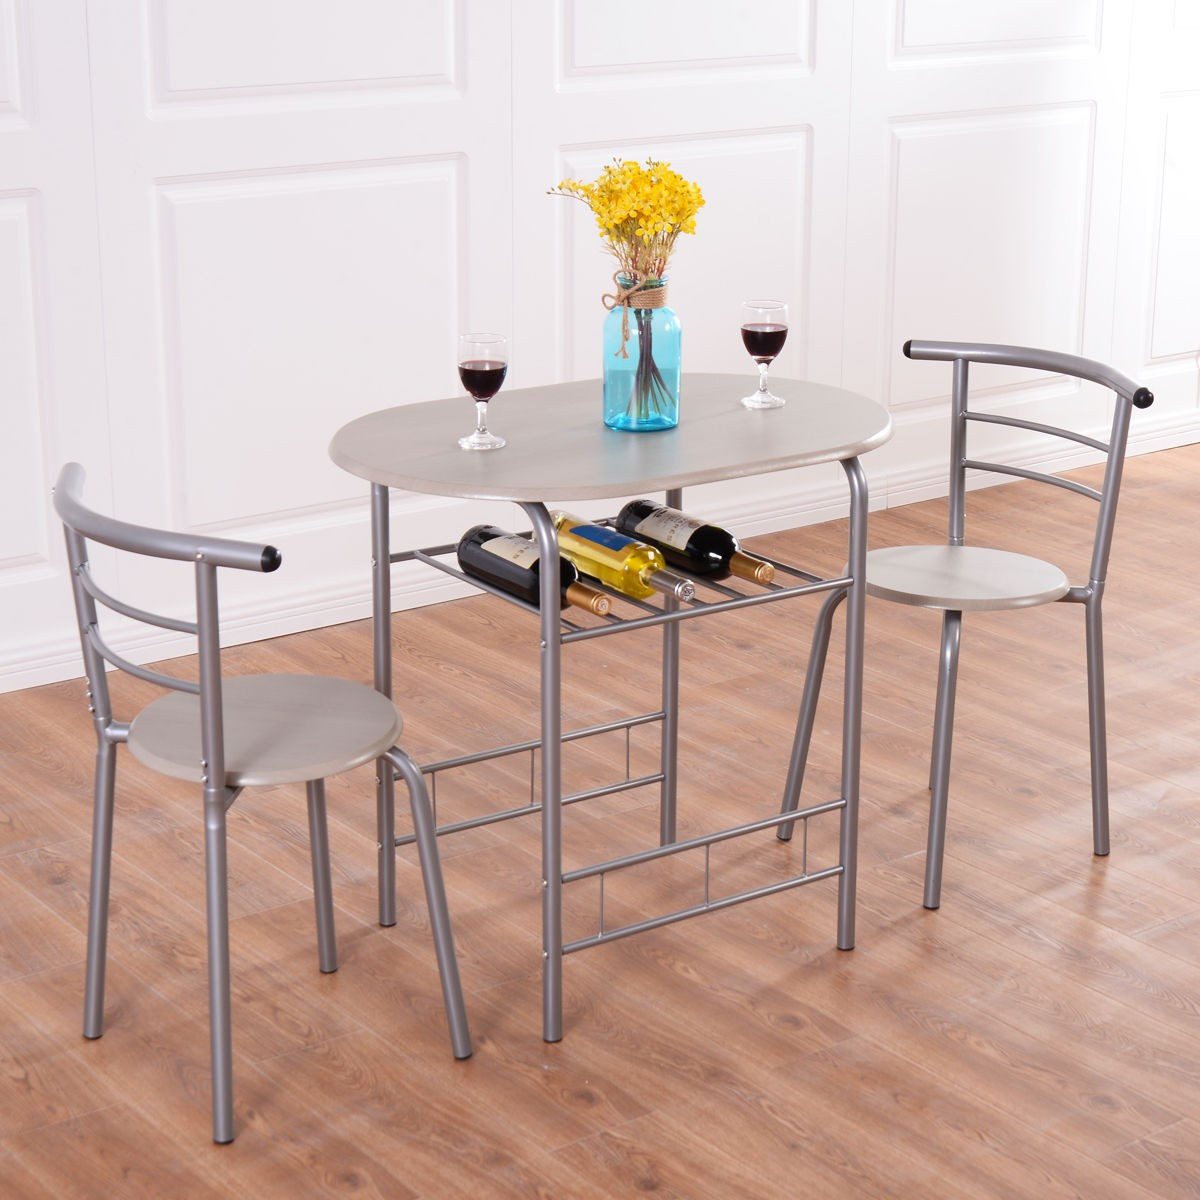 Picnic Table Dining Room Sets: 3pcs Bistro Dining Set Small Kitchen Indoor Outdoor Table